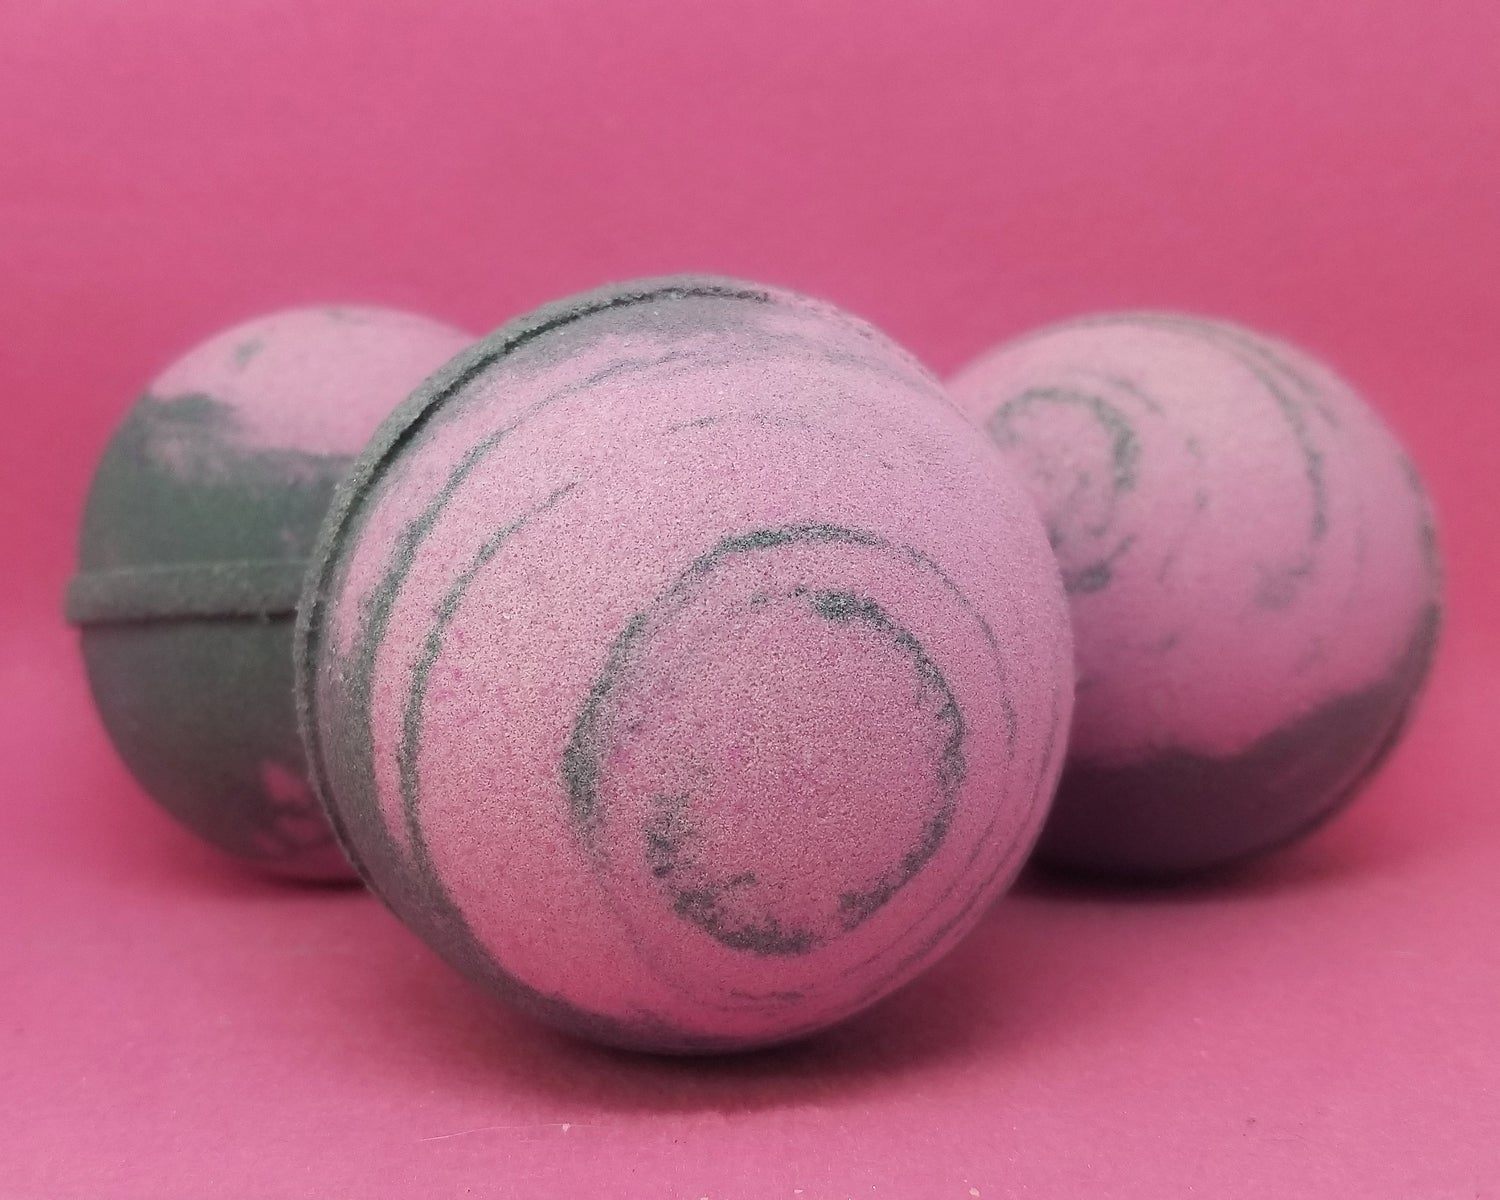 Image of Black Cherry Bomb - Luxury Foaming Shea Butter Bomb